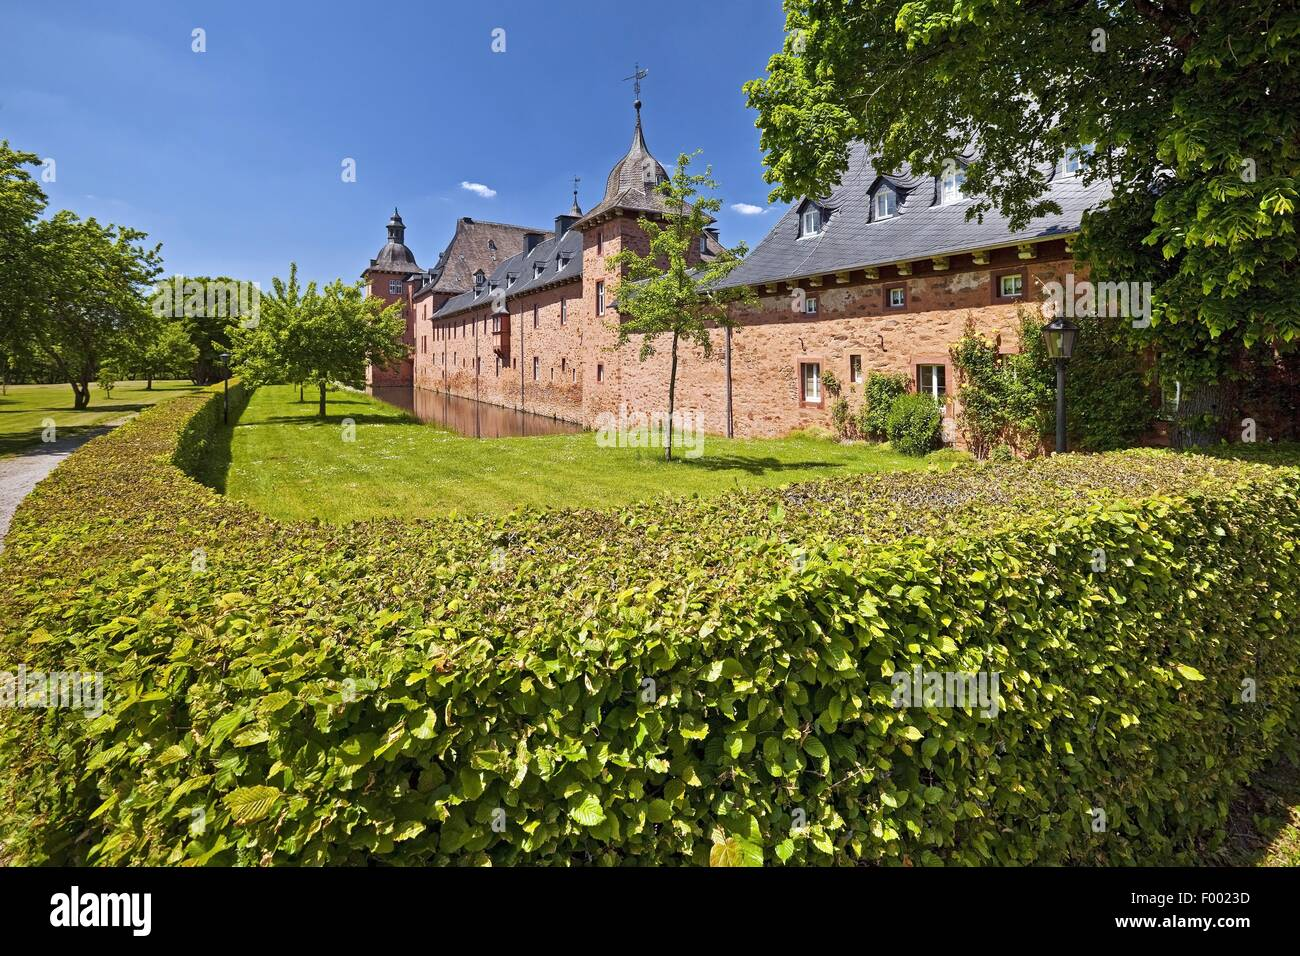 Castle Adolfsburg in the district Oderhundem, Germany, North Rhine-Westphalia, Sauerland, Kirchhundem - Stock Image